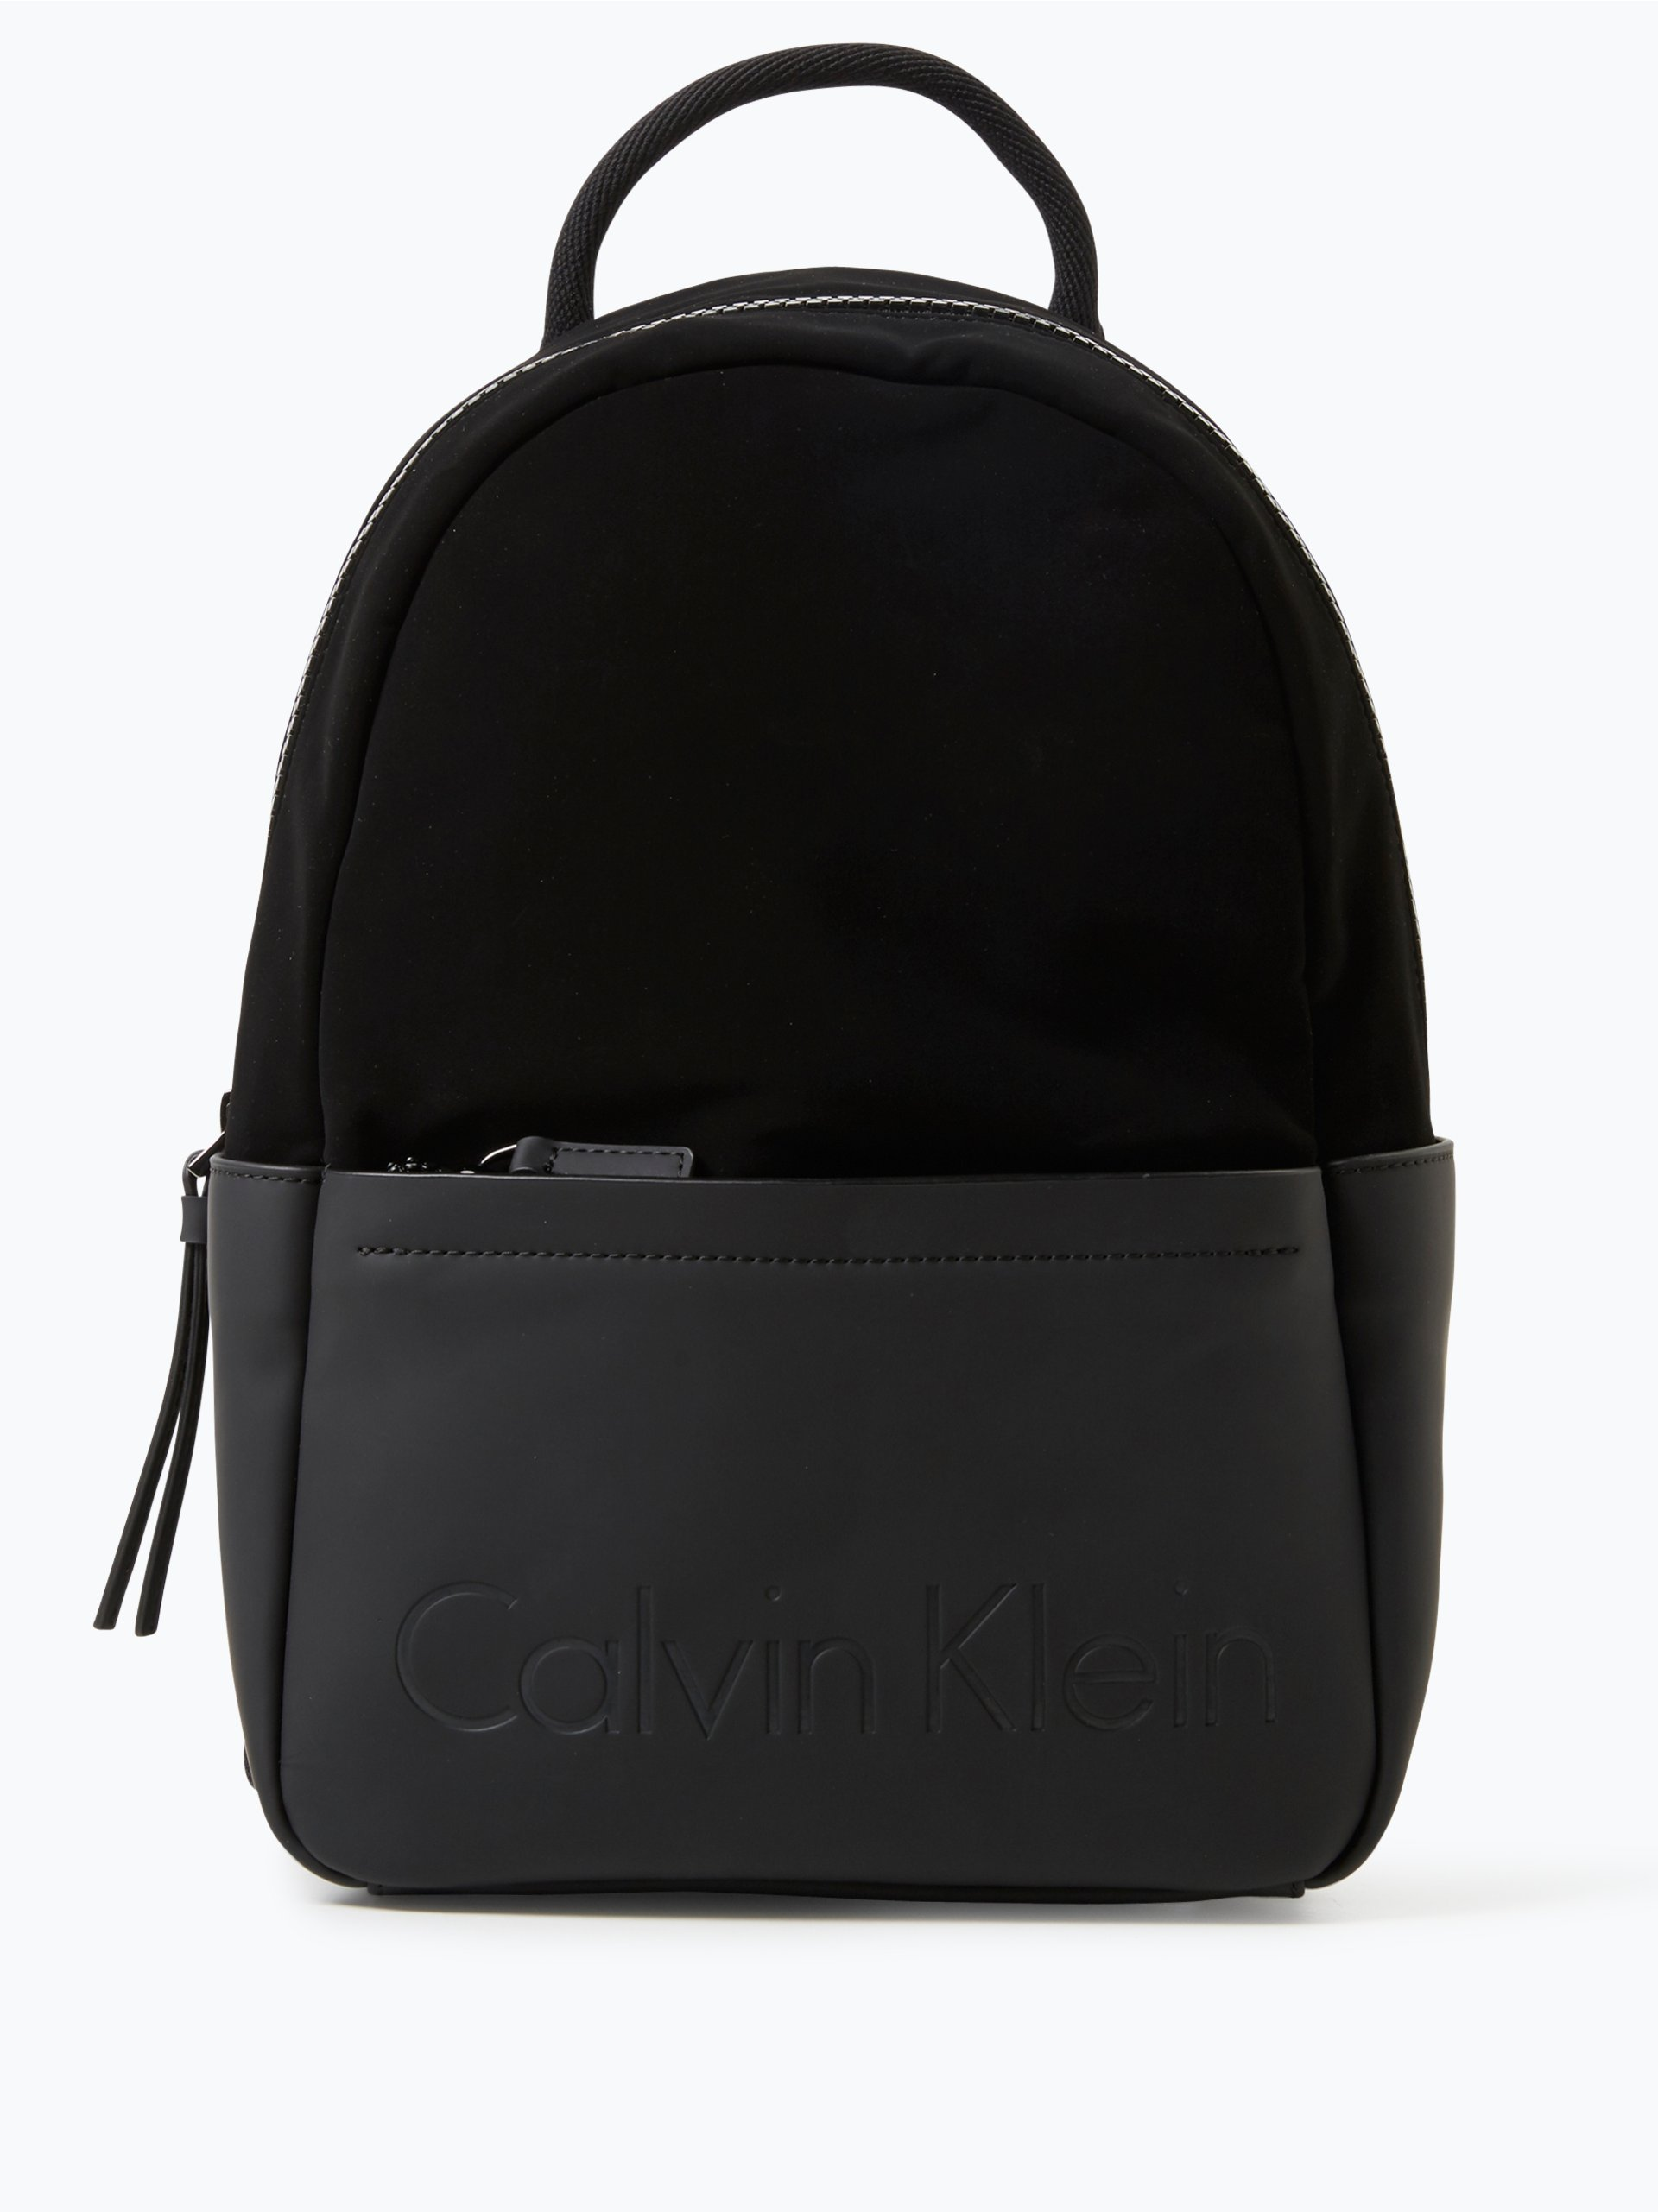 calvin klein damen rucksack susi 3 schwarz uni online kaufen peek und cloppenburg de. Black Bedroom Furniture Sets. Home Design Ideas